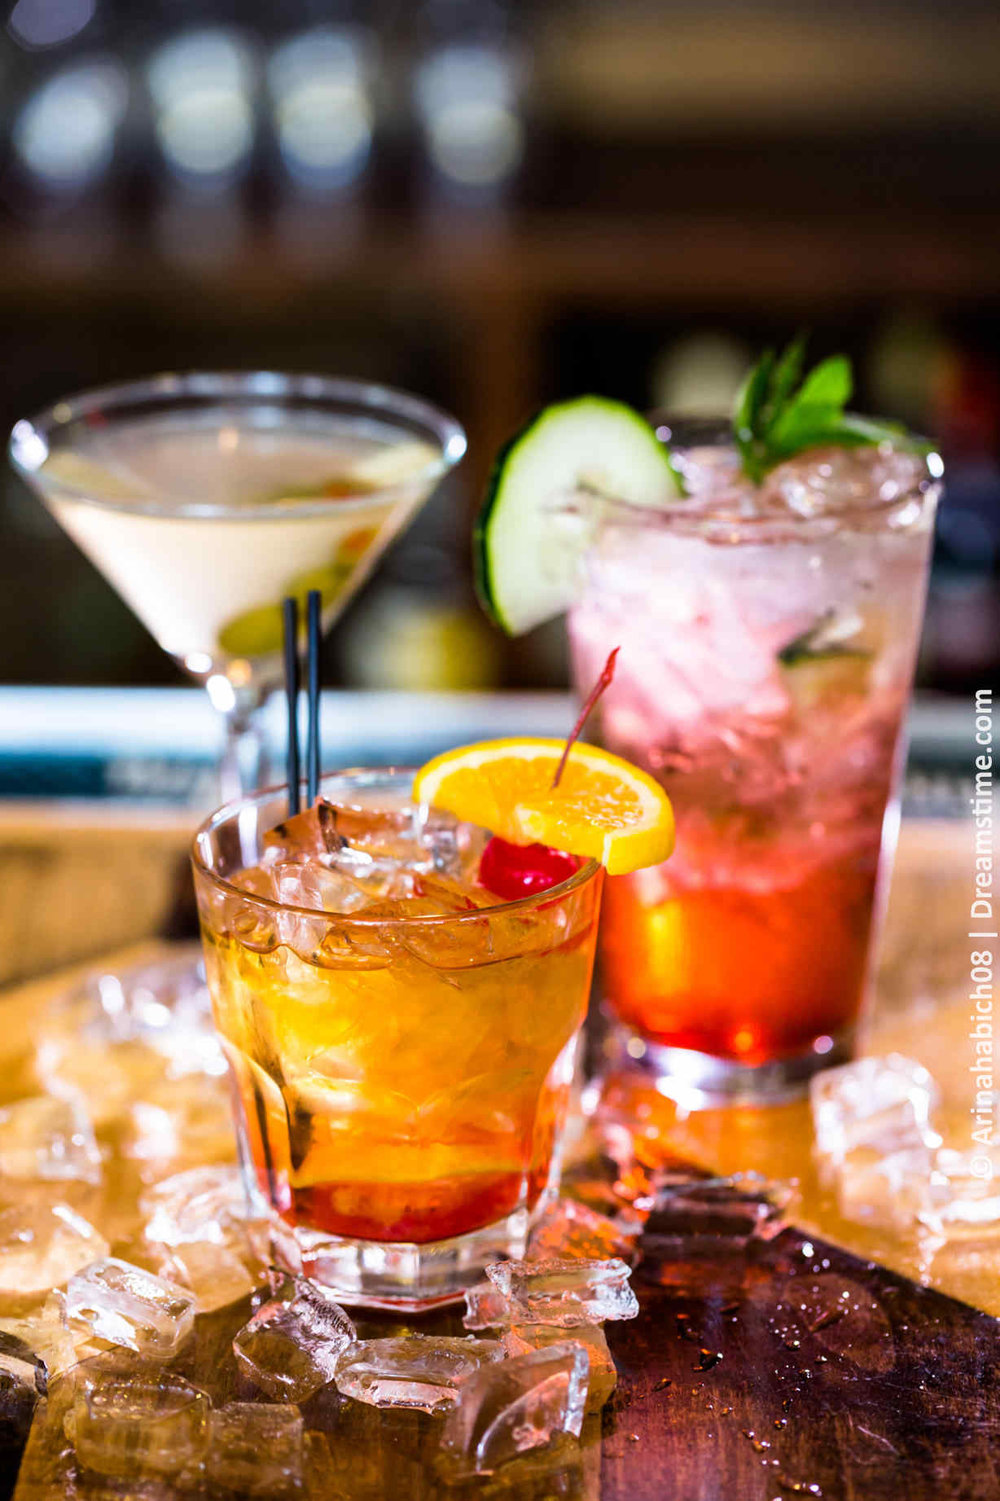 Pick up the Guidebookat your nearest distillery - And then have one of their specialty cocktails!